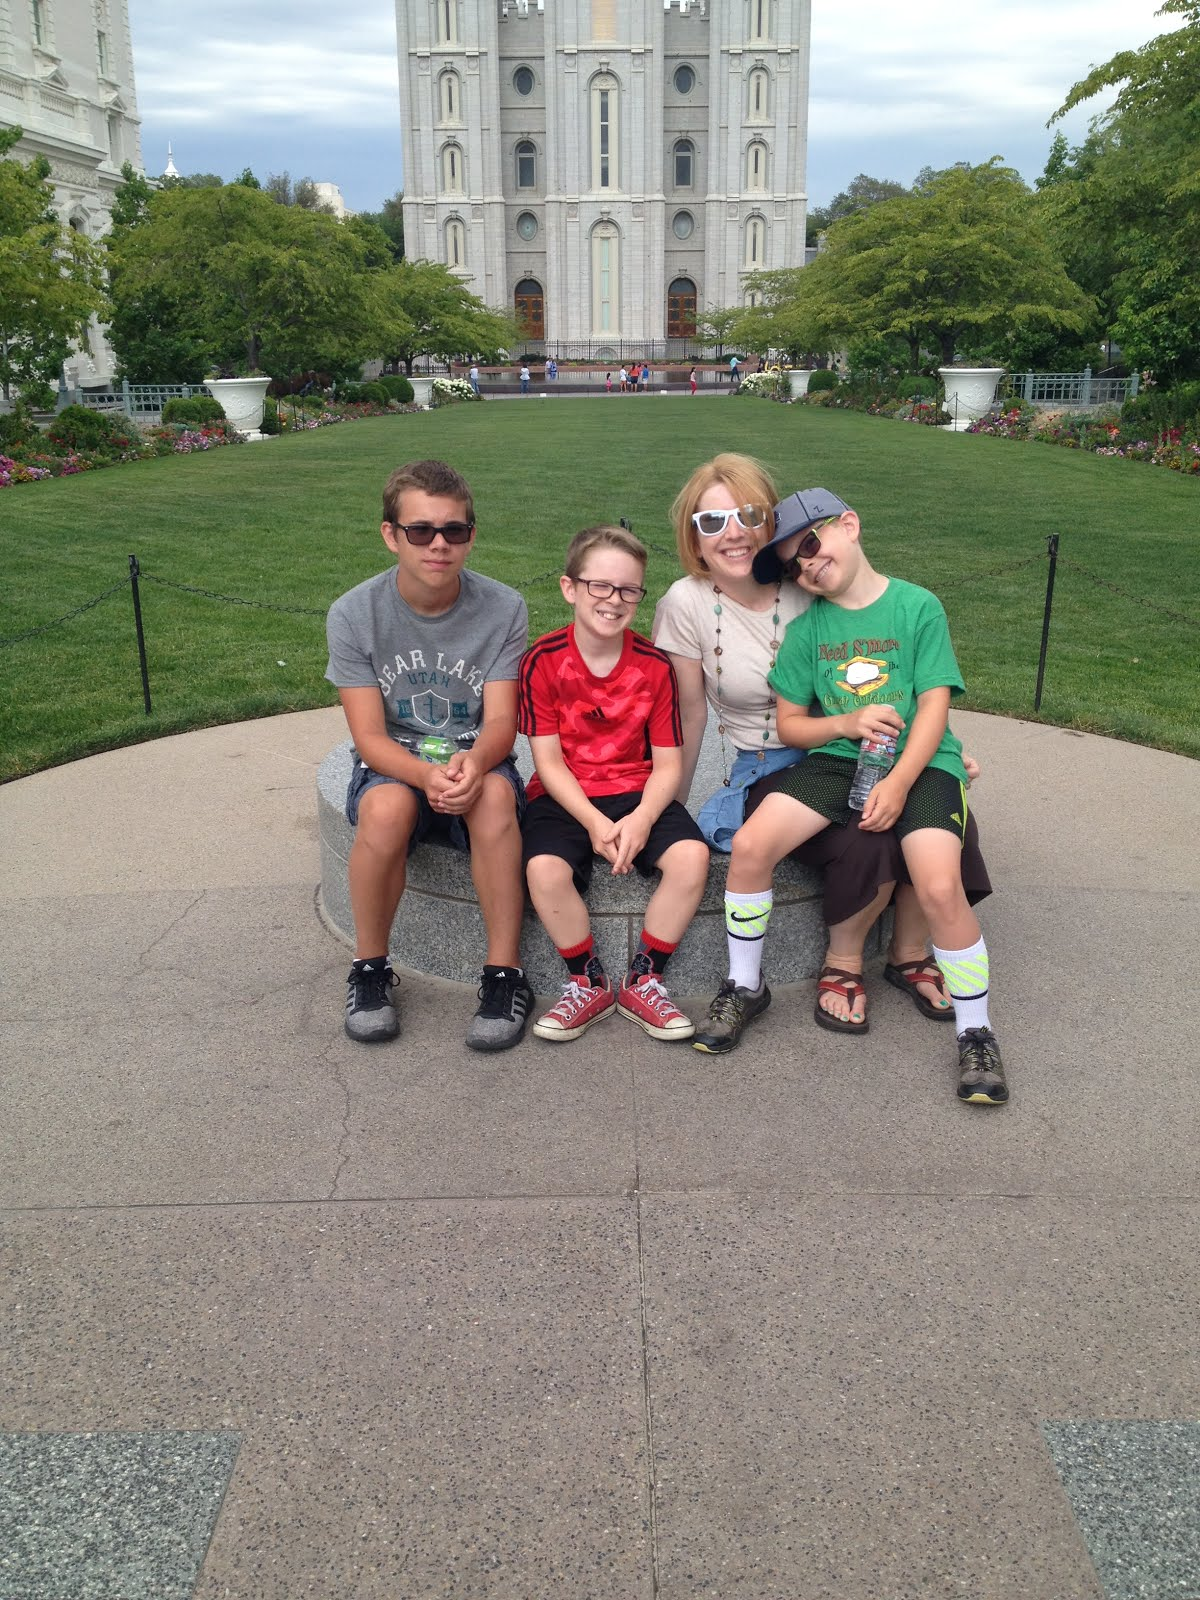 At Temple Square Summer 2016